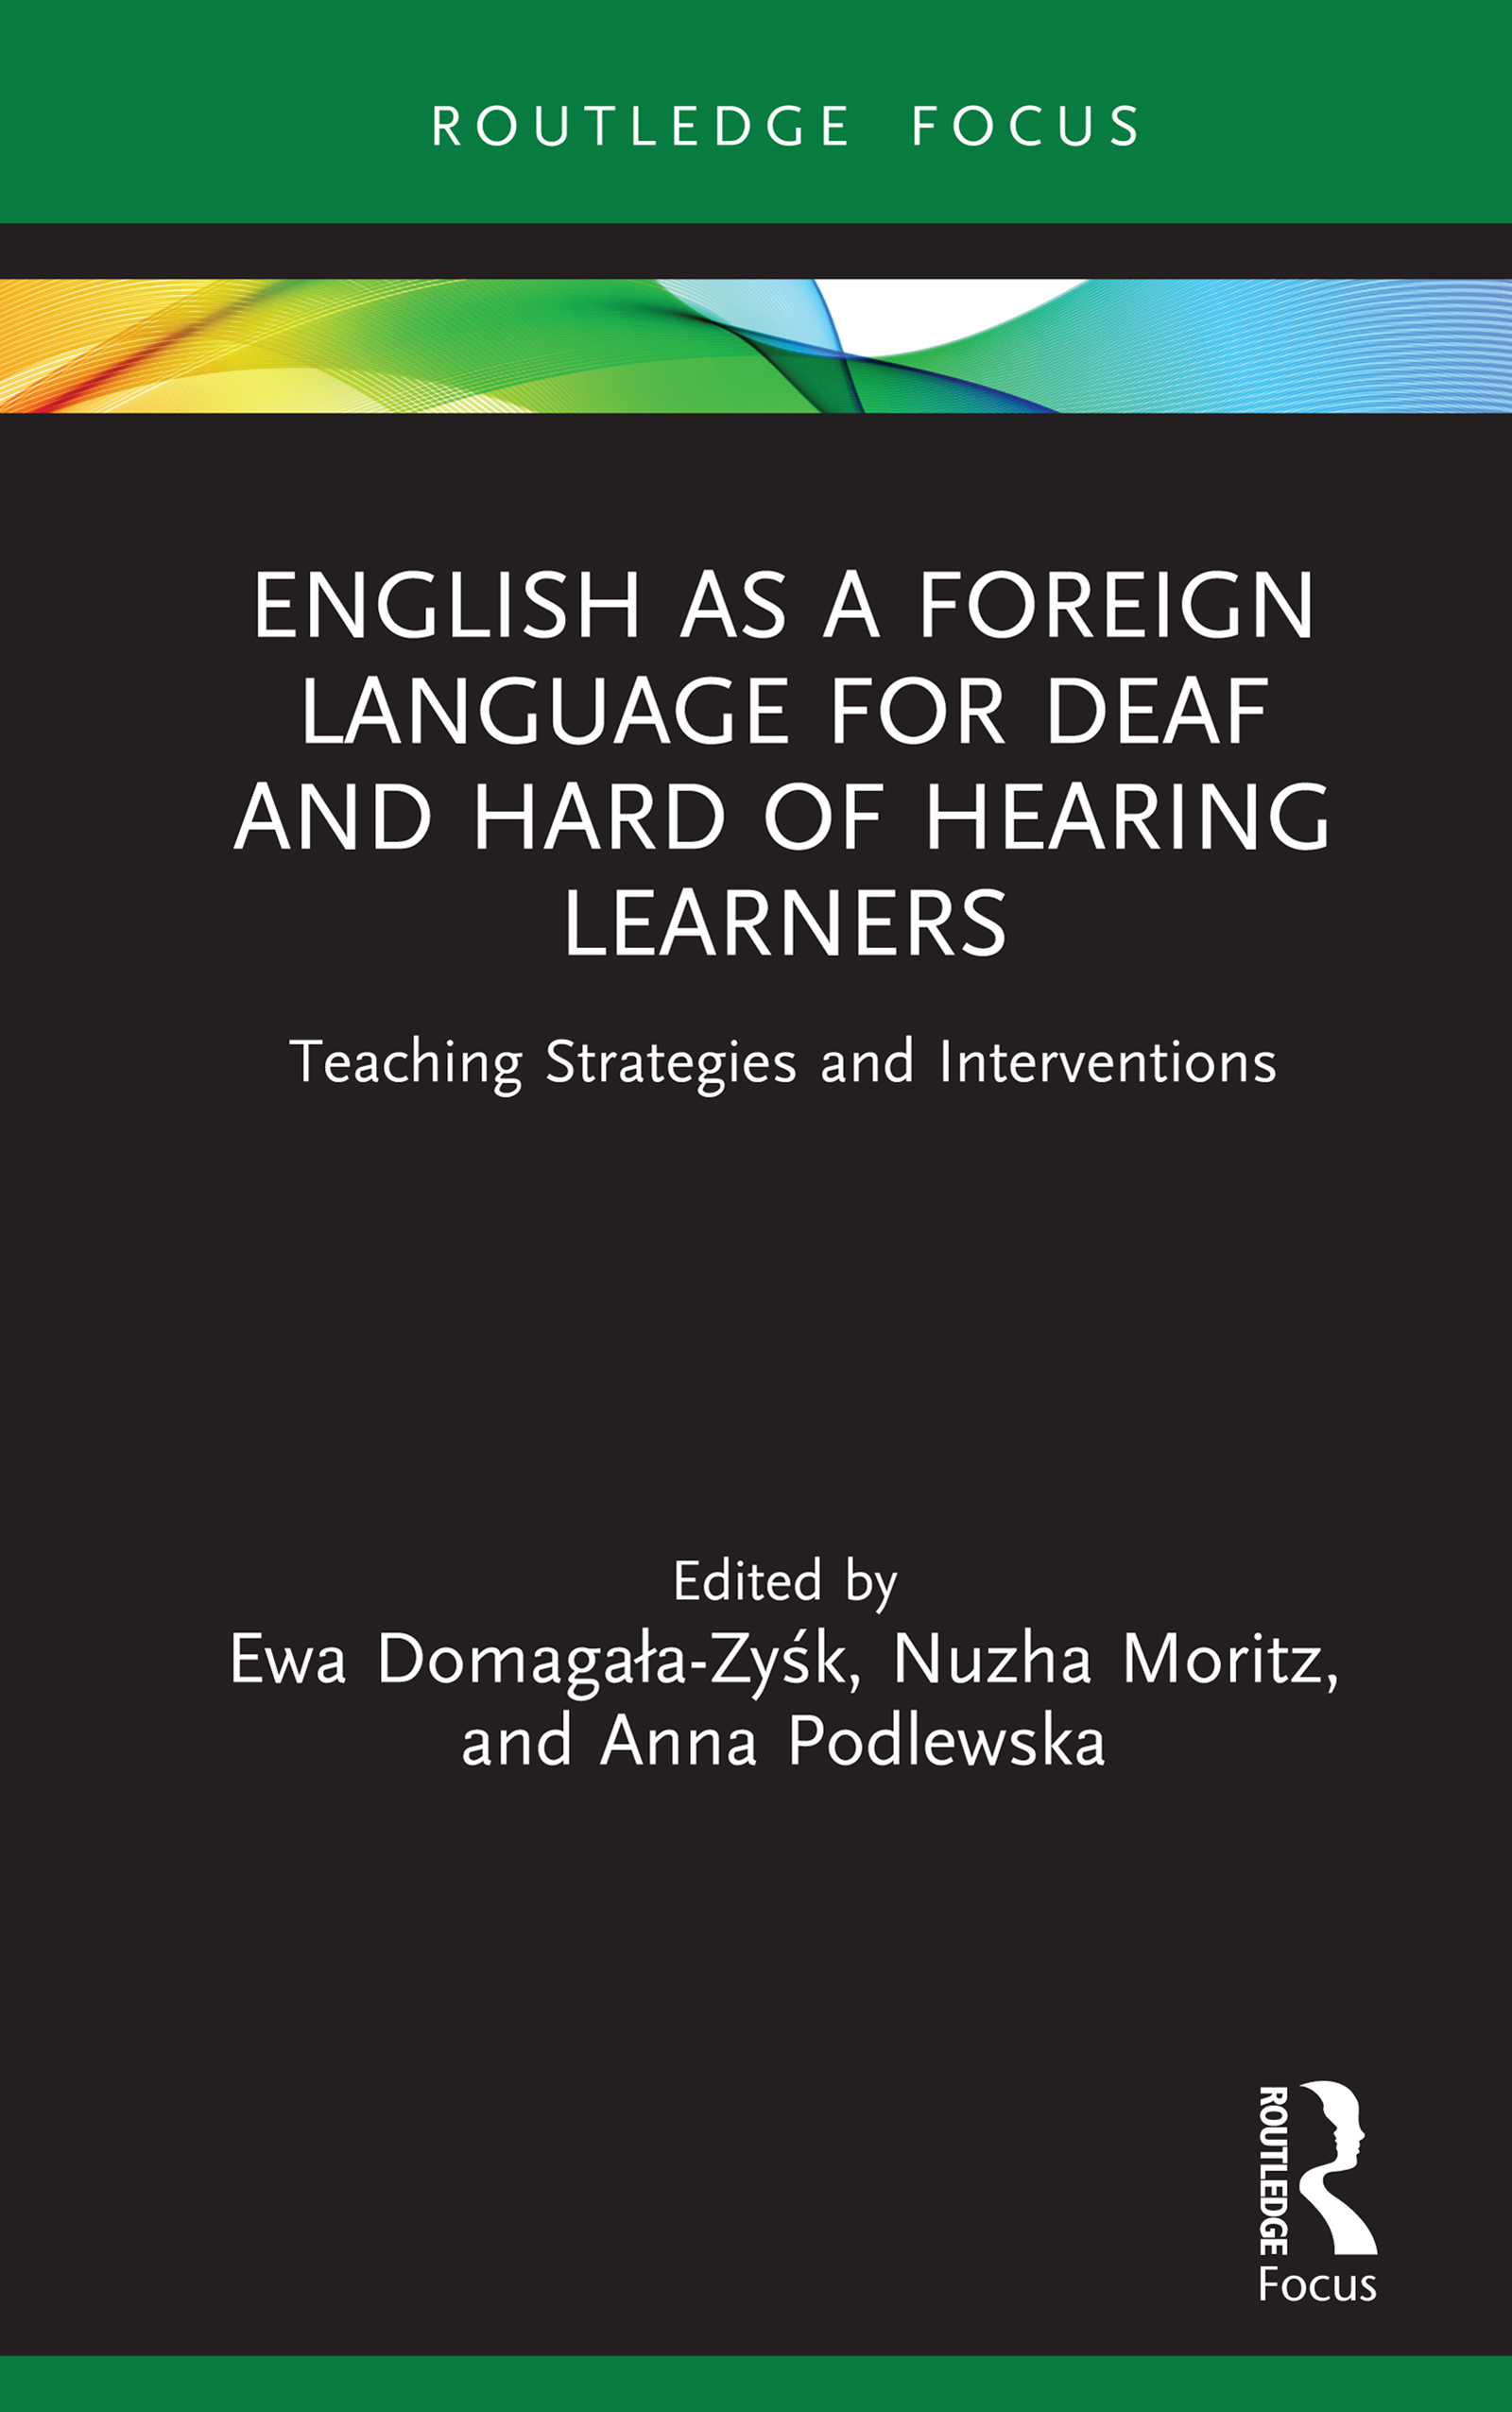 English as a Foreign Language for Deaf and Hard of Hearing Learners